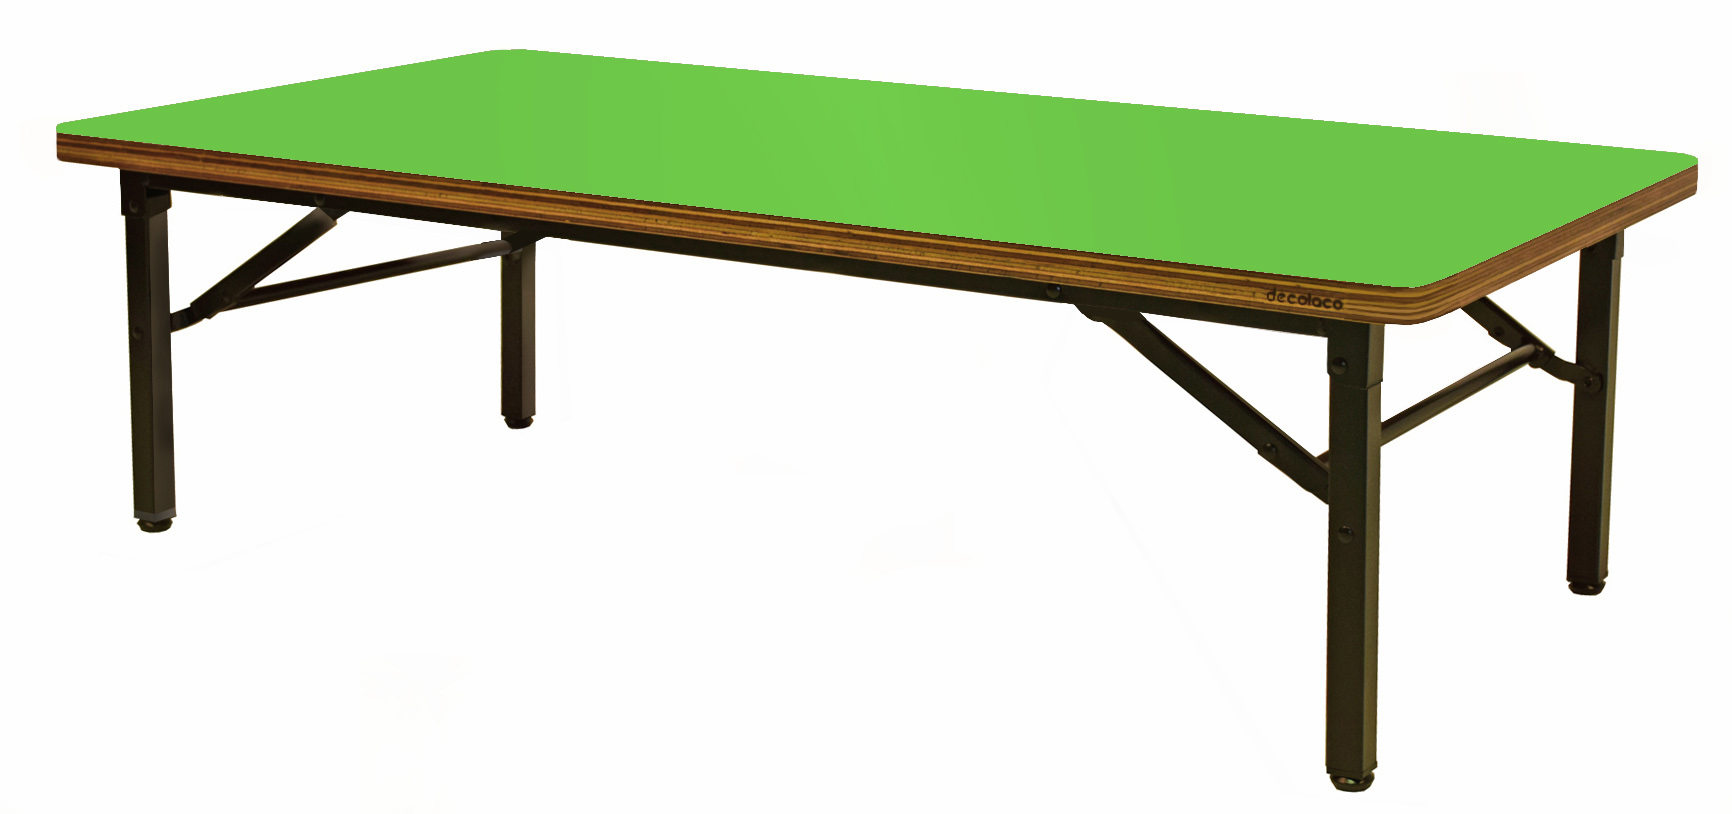 table03-004